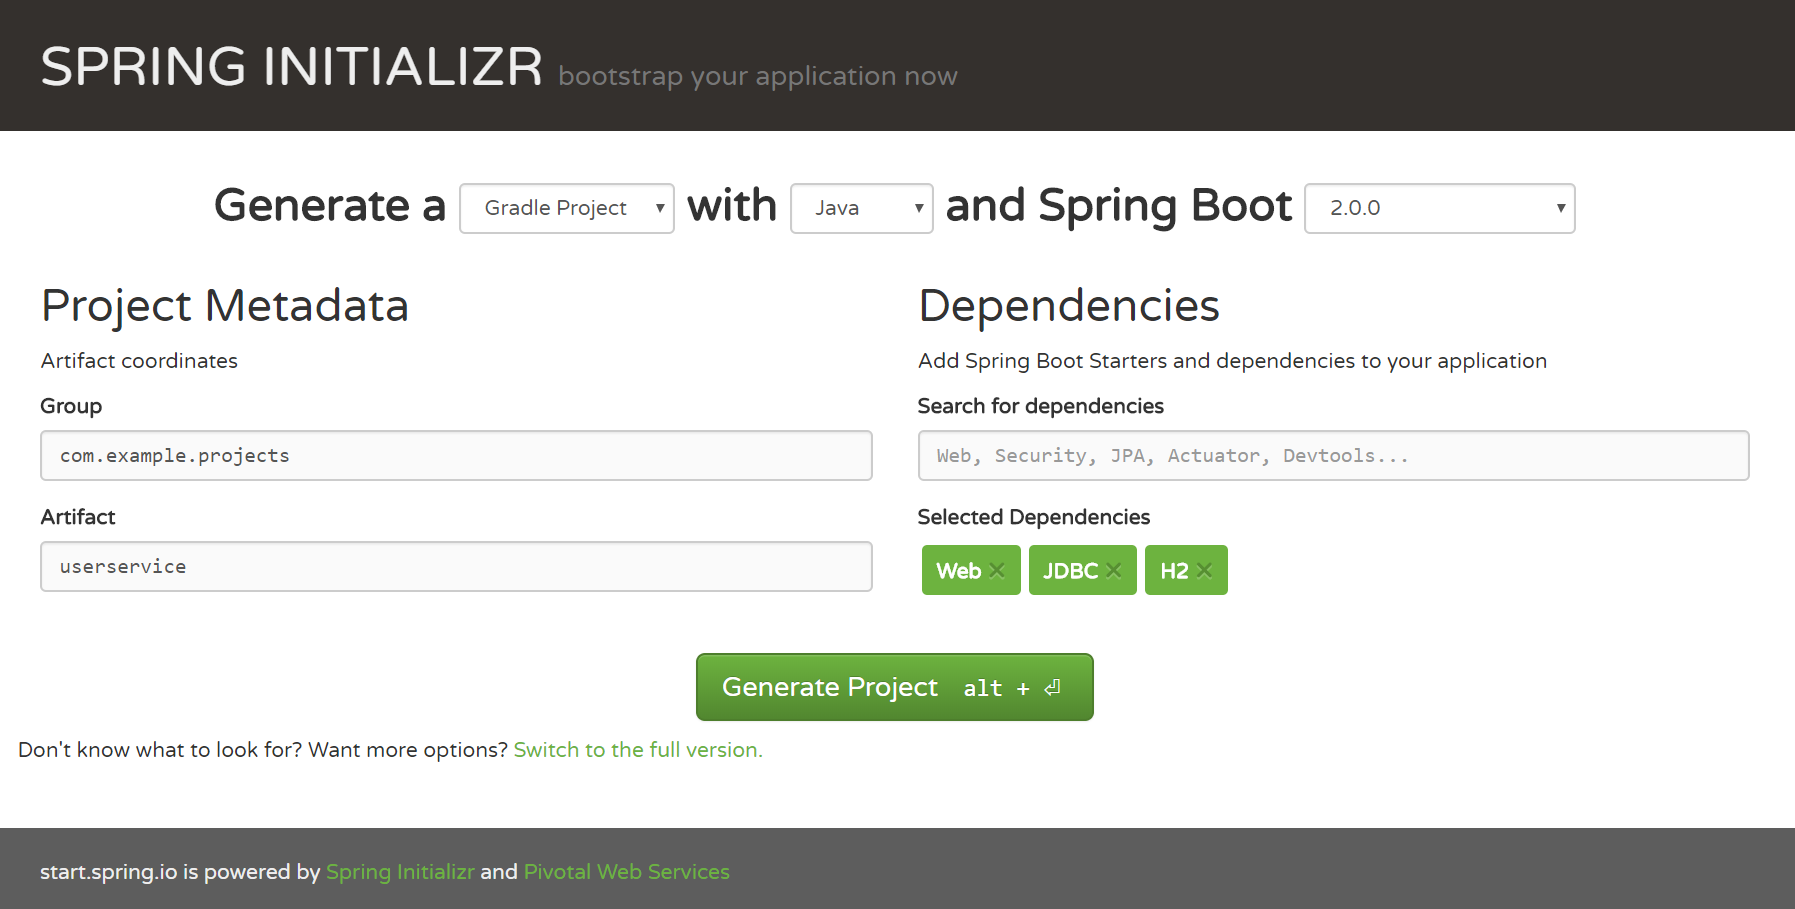 gradle project from Spring Initializer